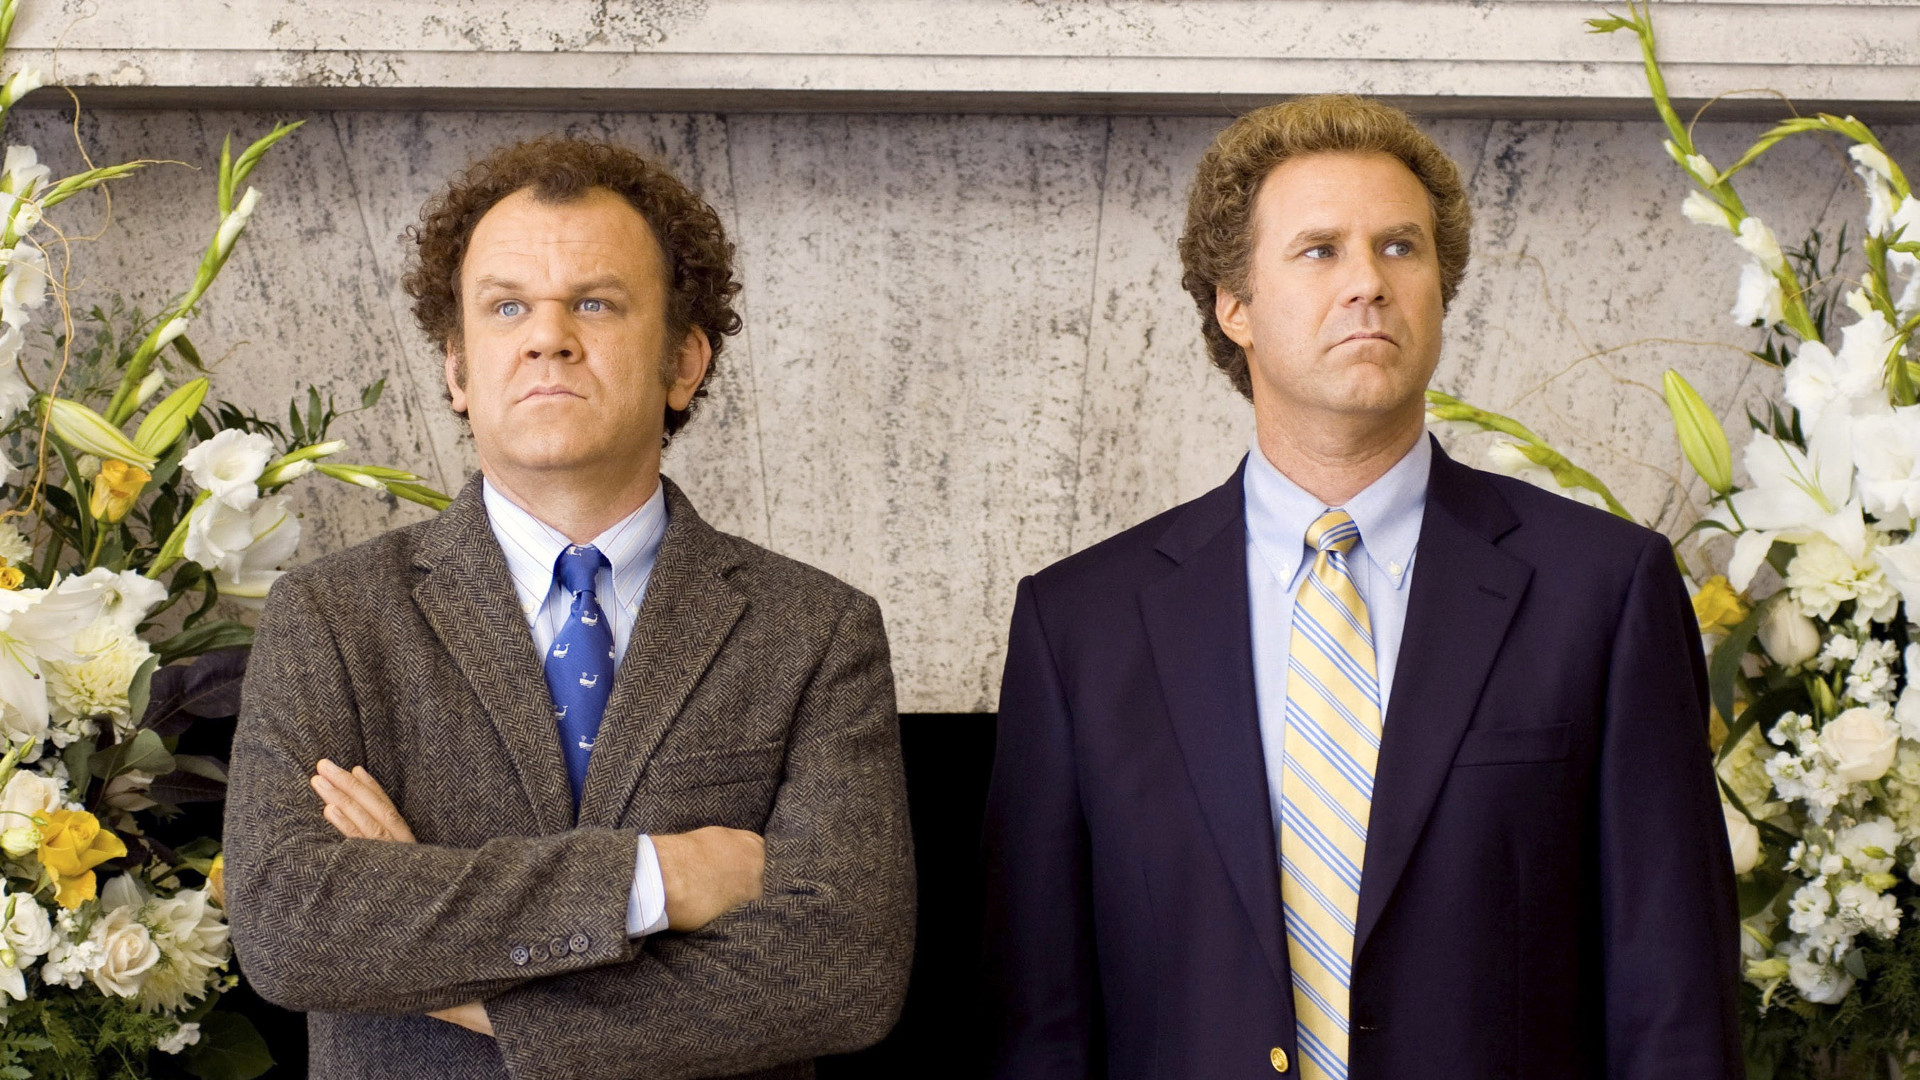 Ferrell and Reilly to Play HOLMES AND WATSON For Sony